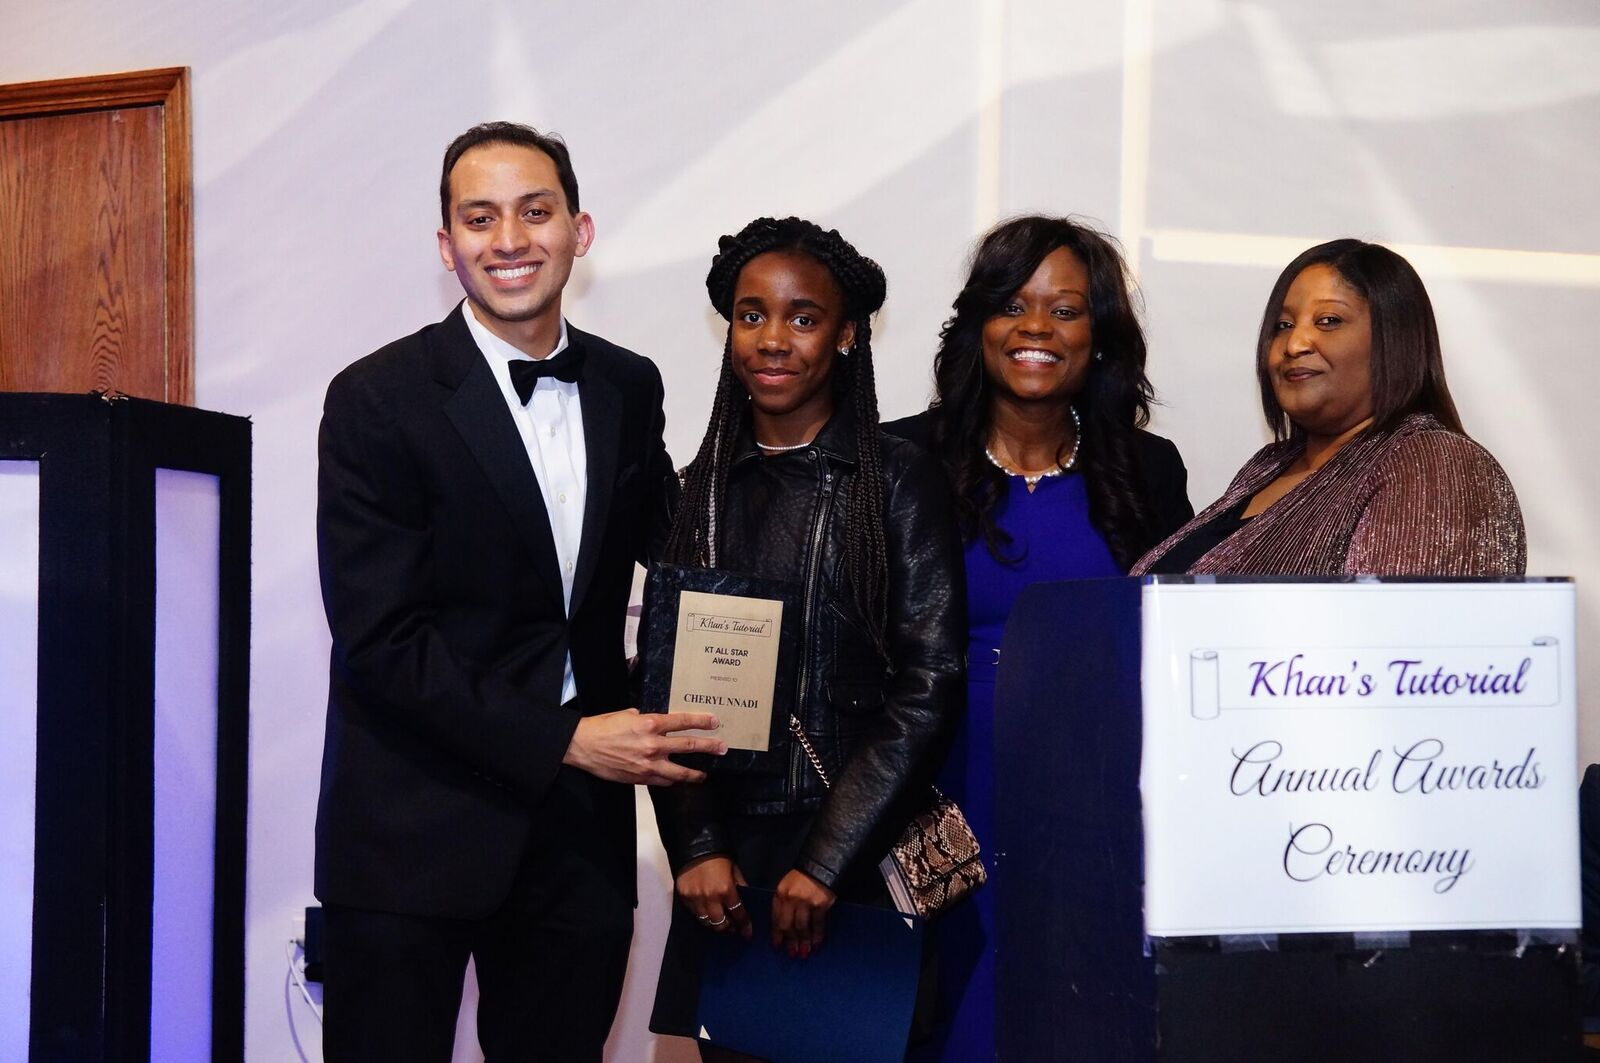 Assemblymember Bichotte along with Dr. Ivan Khan, Executive Director of Khan�s Tutorial, and Karen Watts, Superintendent of Brooklyn Technical High School and Brooklyn Latin, award Stuyvesant High School bound student Cheryl Nandi with the Dr. Mansur Khan SHSAT Opportunity Scholarship.